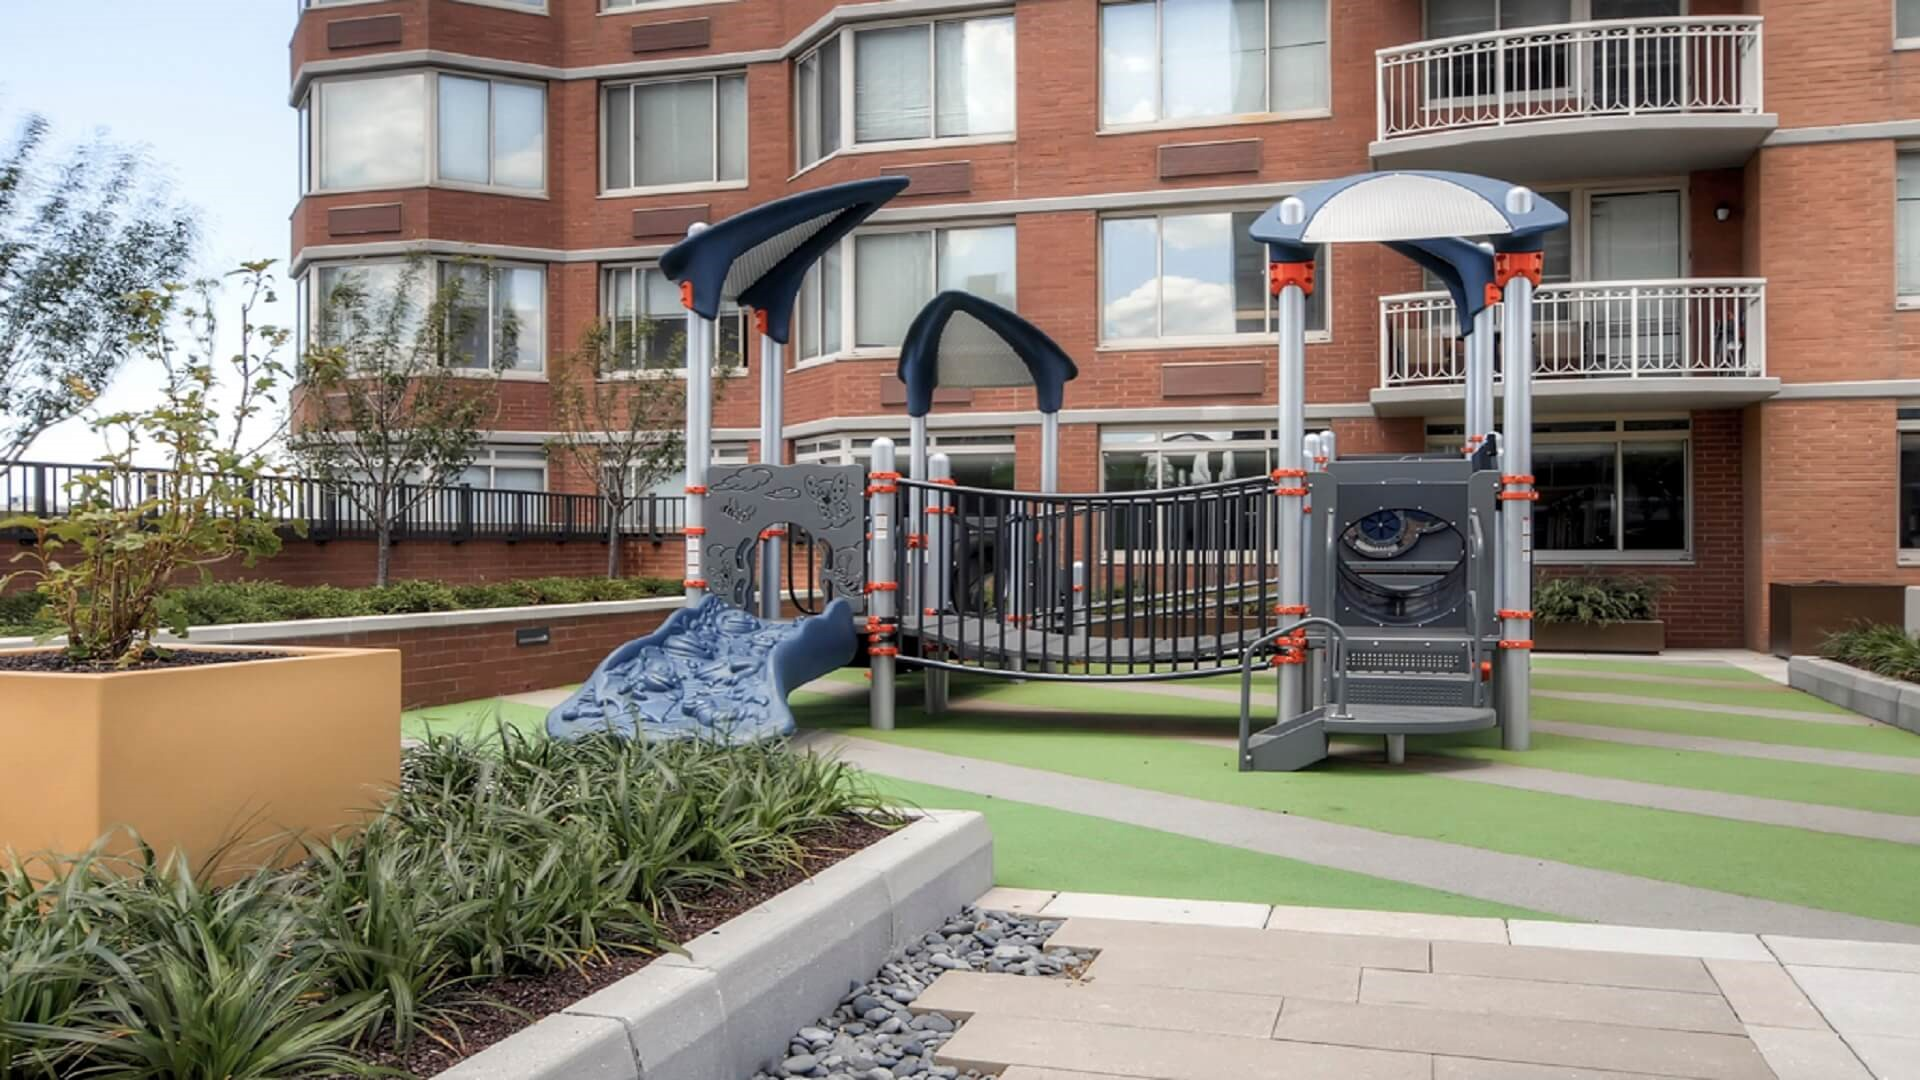 Playground at M2 Apartments, Hudson Exchange, Jersey City - Citybase Apartments